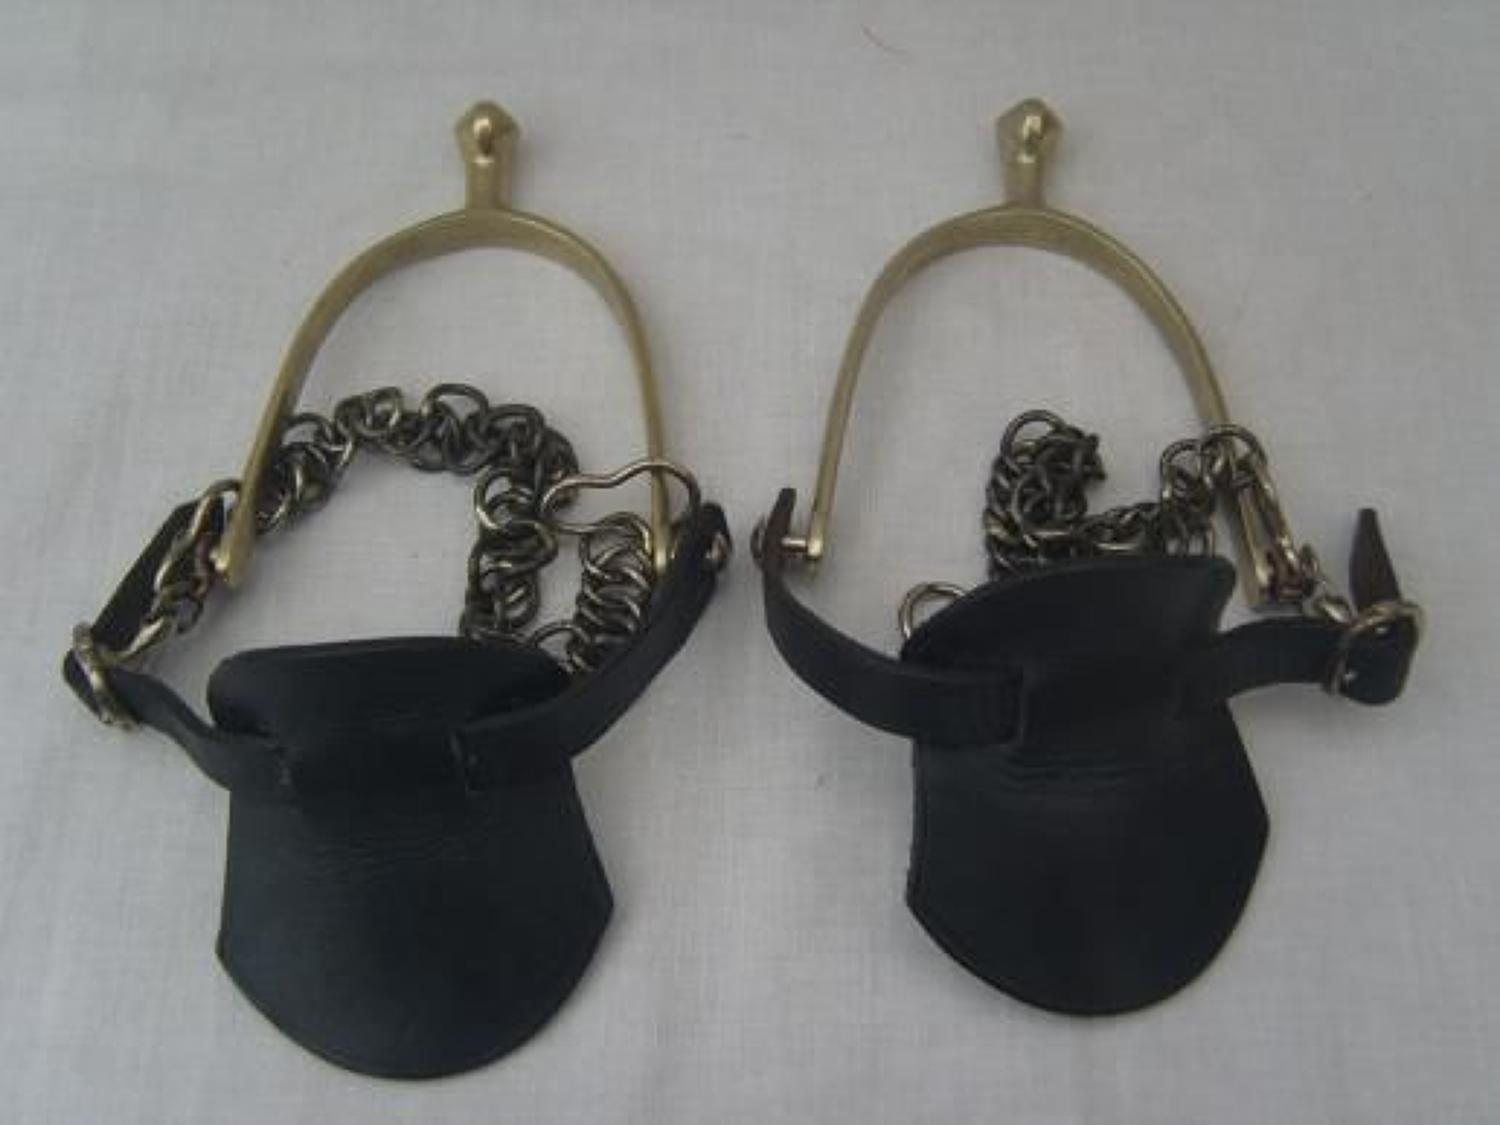 Pair of British Army Mounted troops spurs